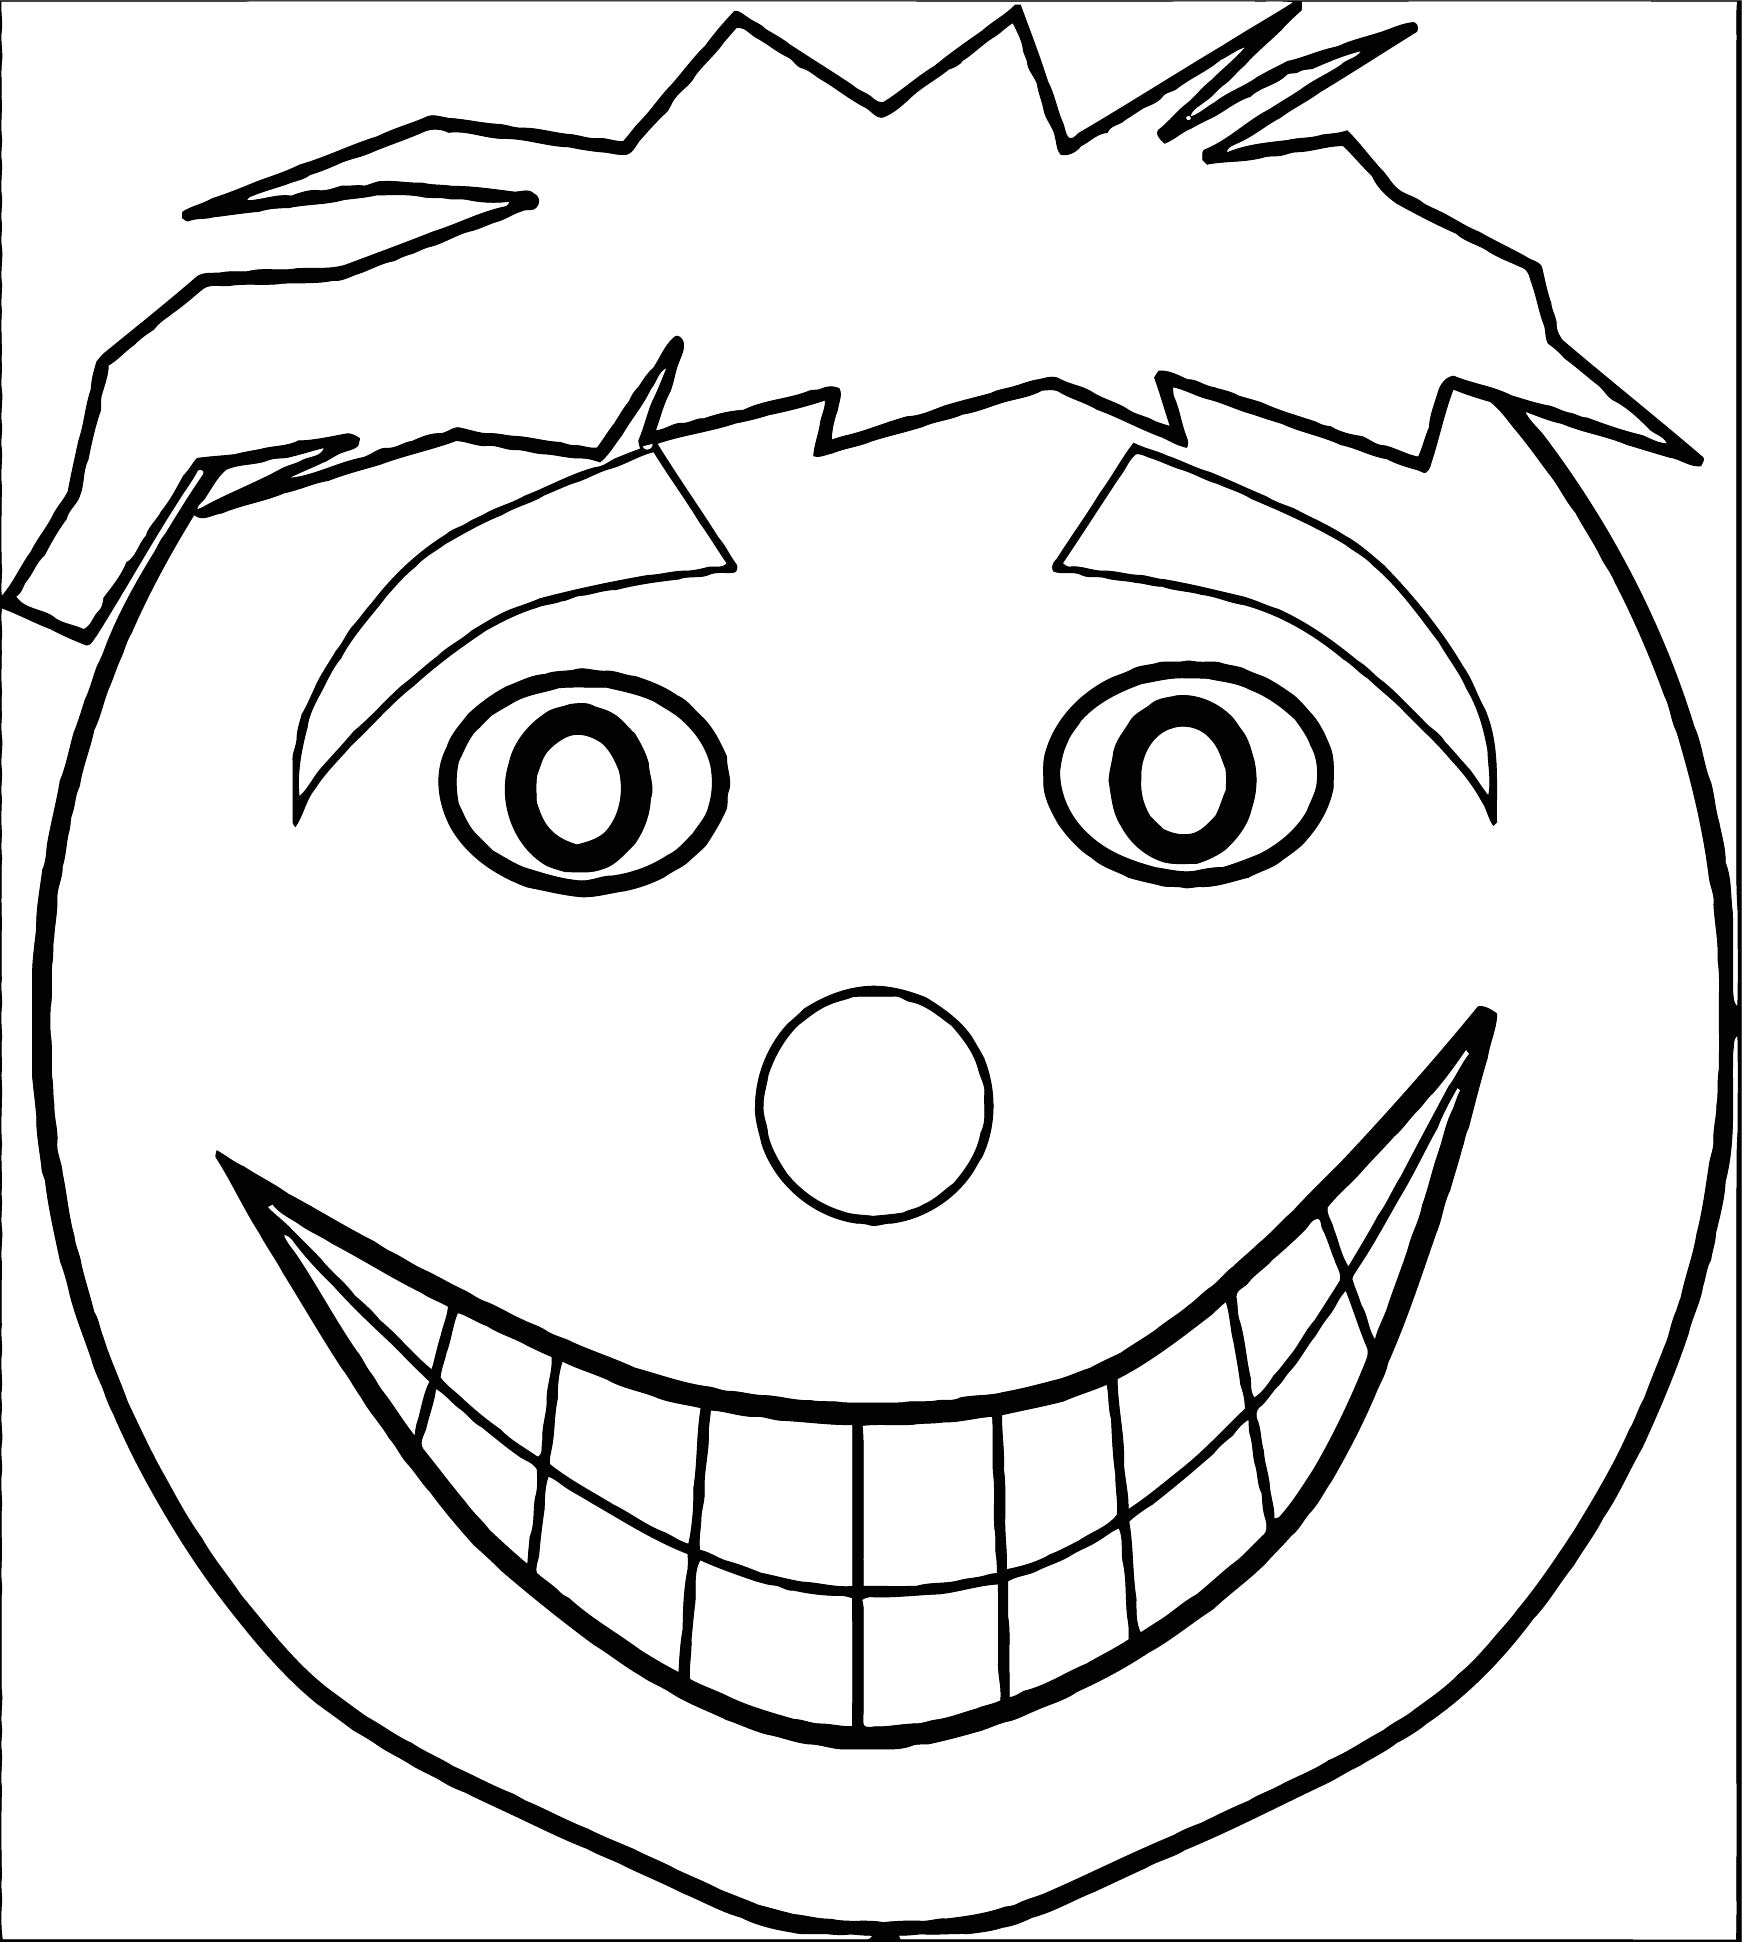 Face Images Coloring Page 27